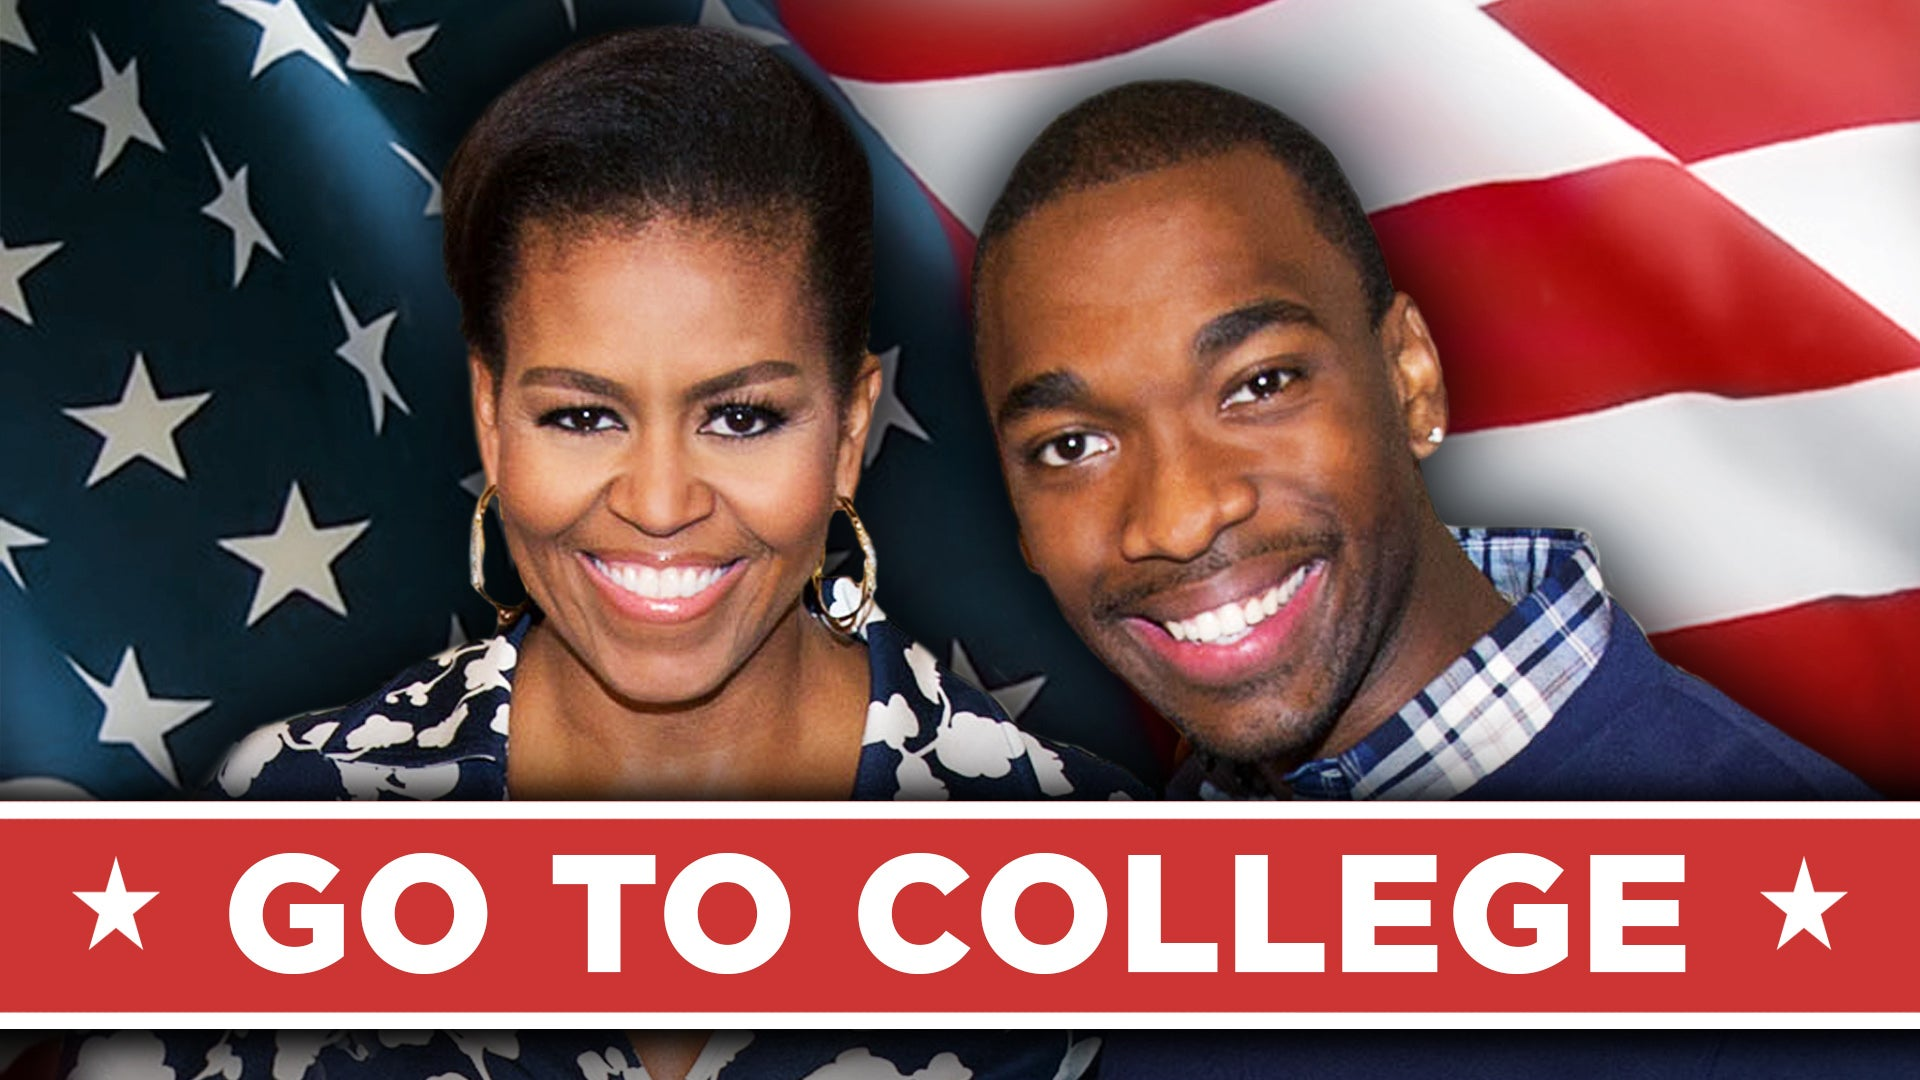 Michelle Obama Lands a Spot of the Billboard Charts with 'Go to College'